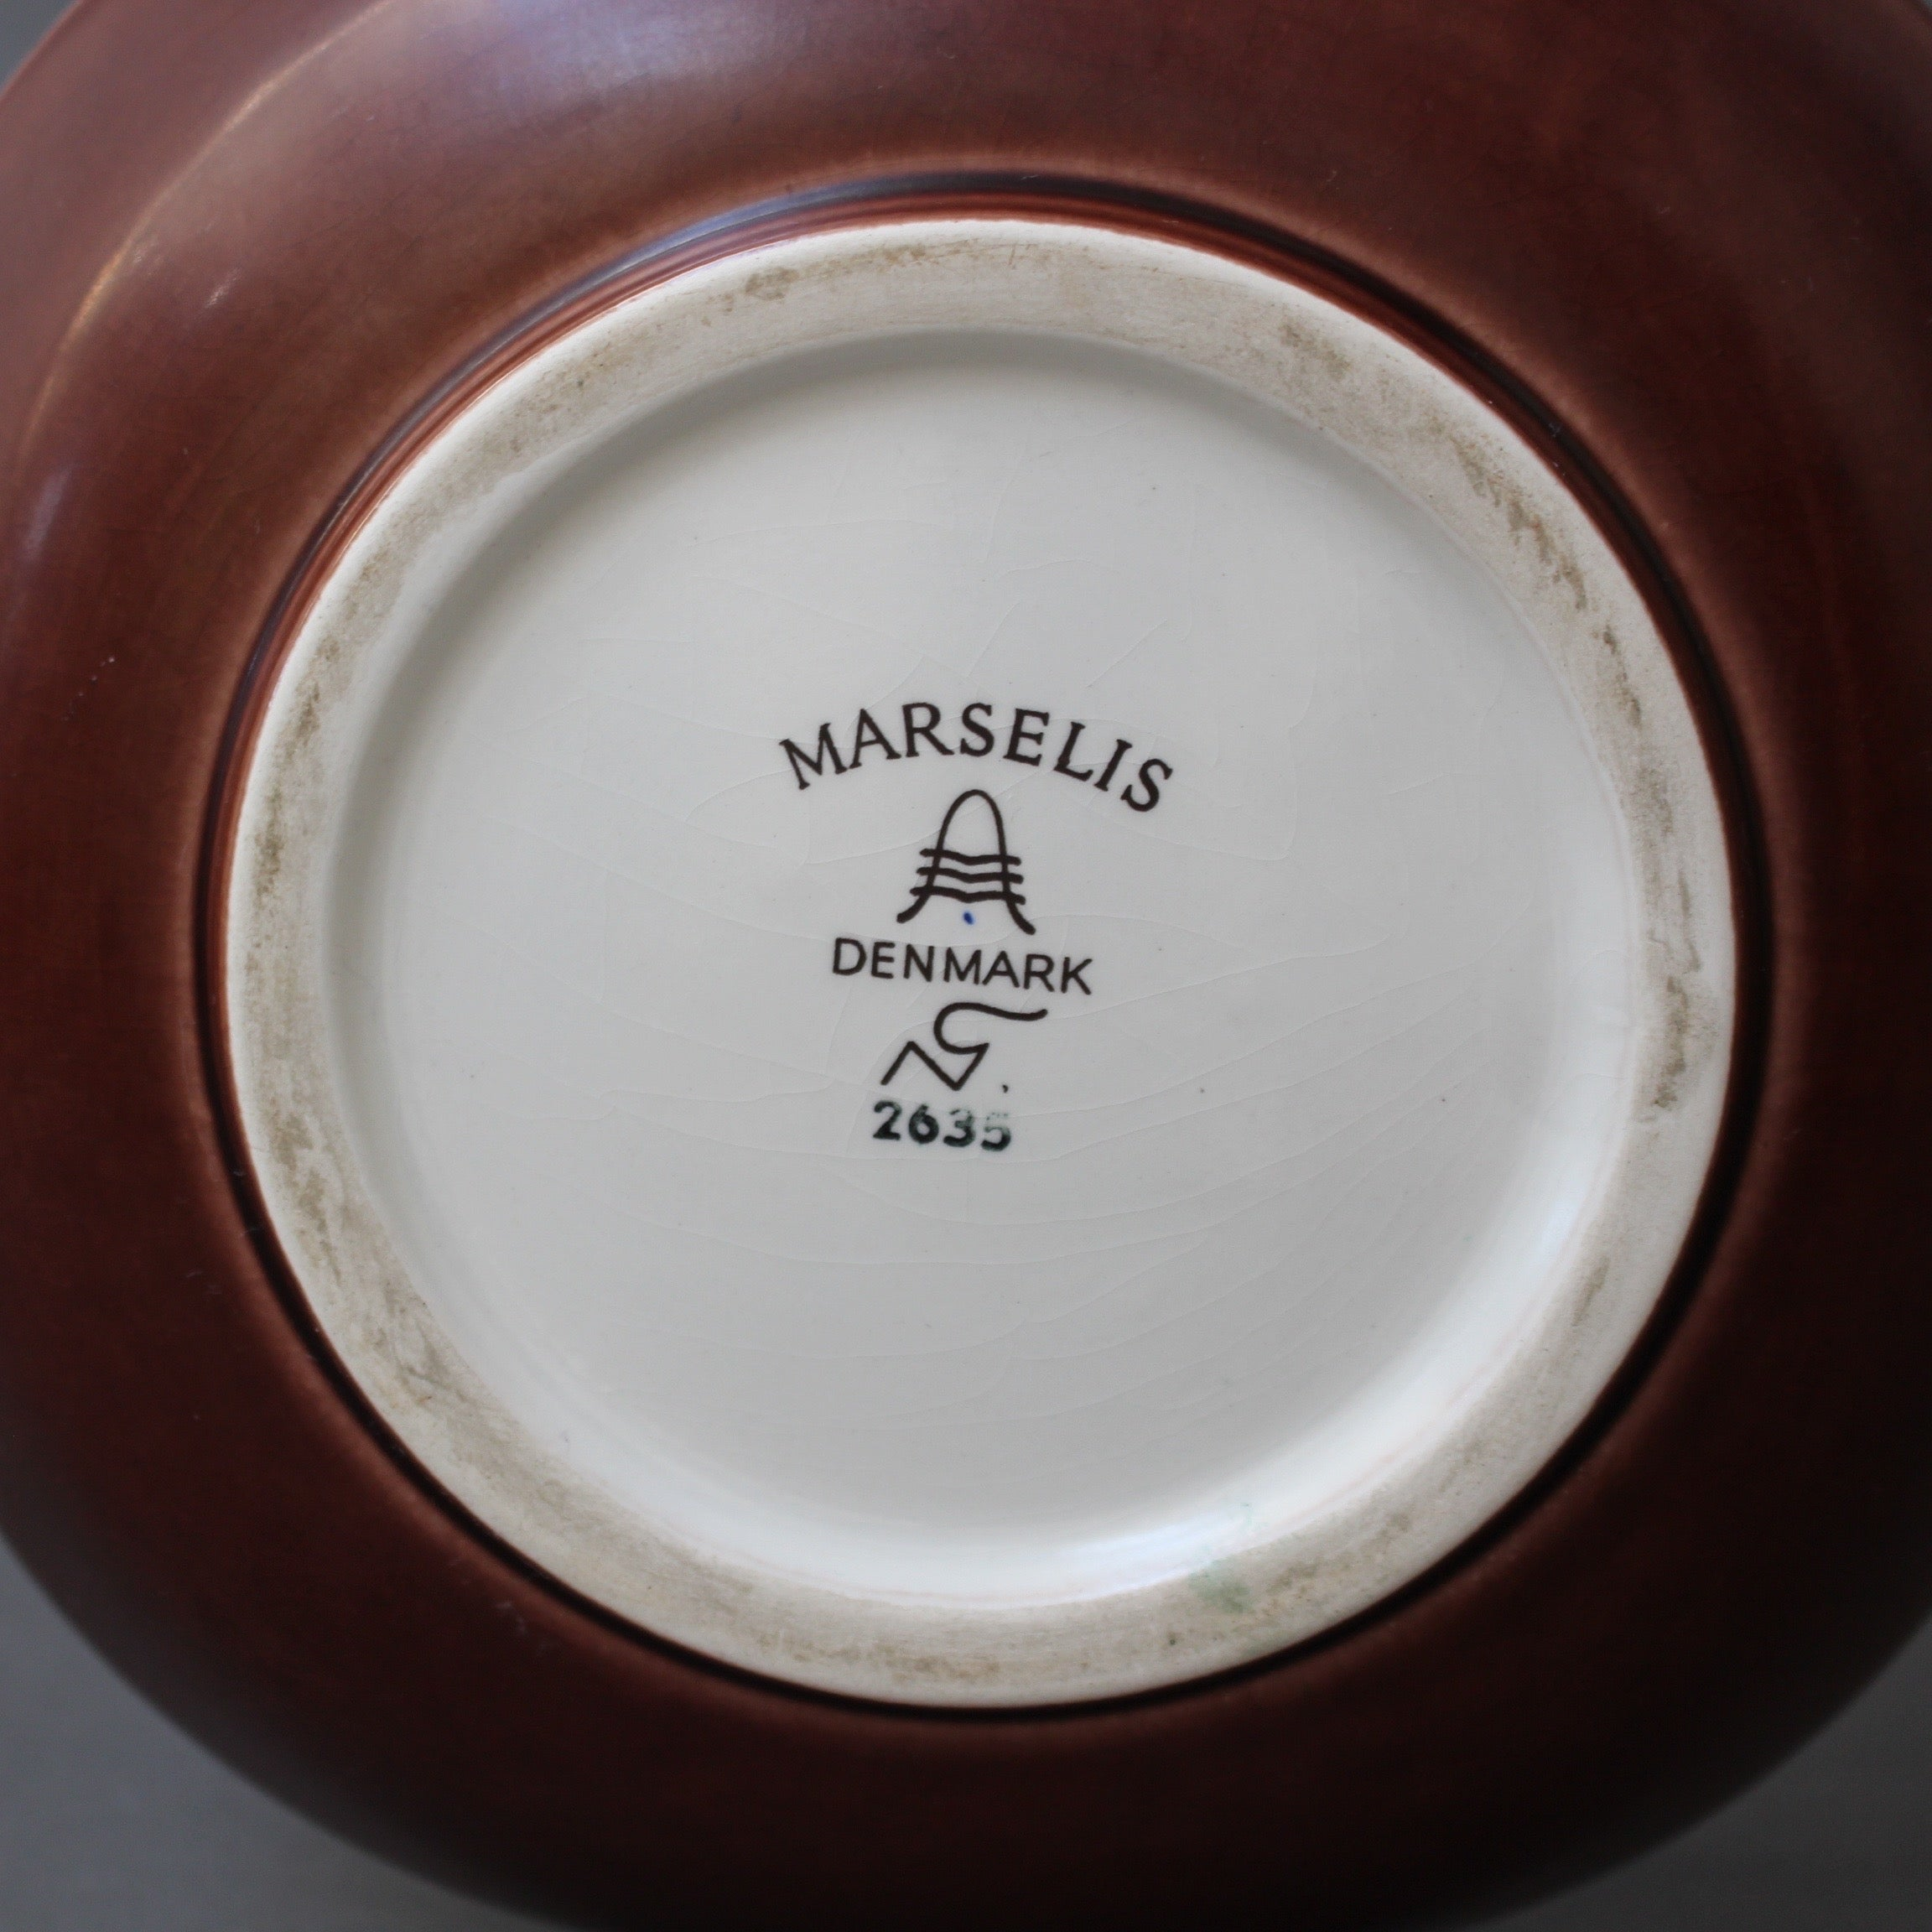 'Marselis' Porcelain Bowl by Nils Thorsson for Aluminia - Royal Copenhagen (Circa 1960s)